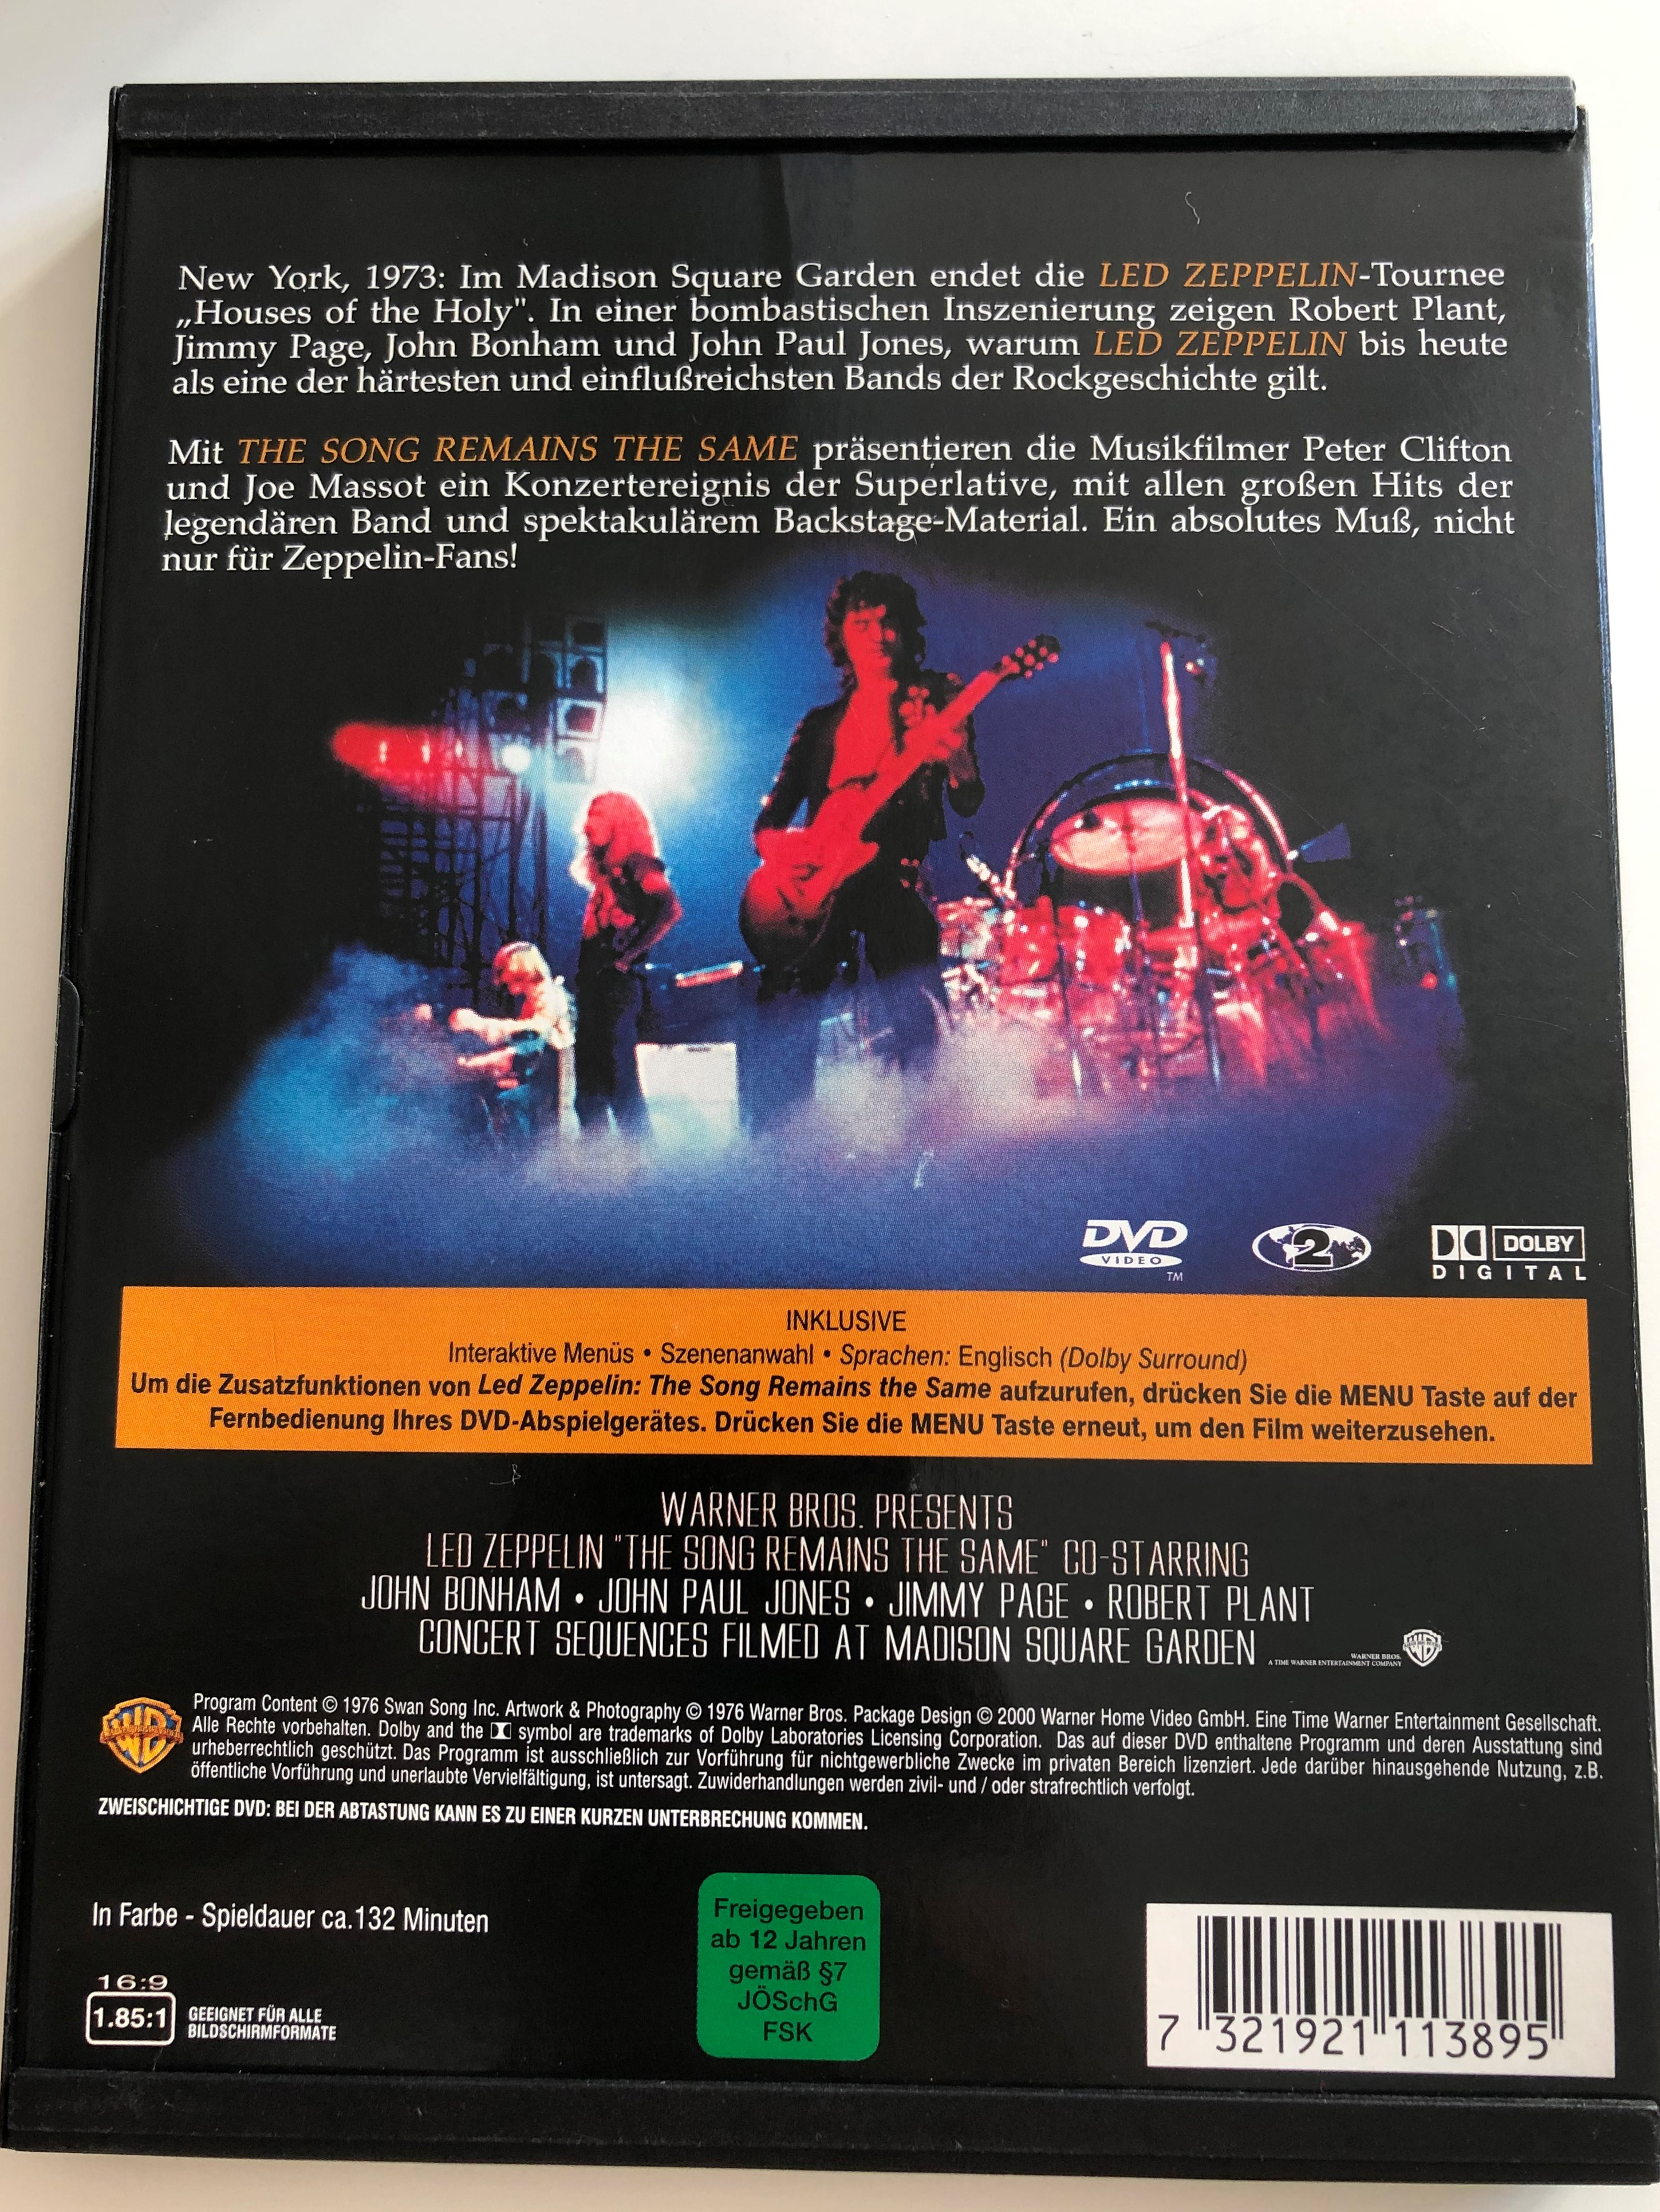 led-zeppelin-the-song-remains-the-same-dvd-1976-in-concert-and-beyond-6.jpg